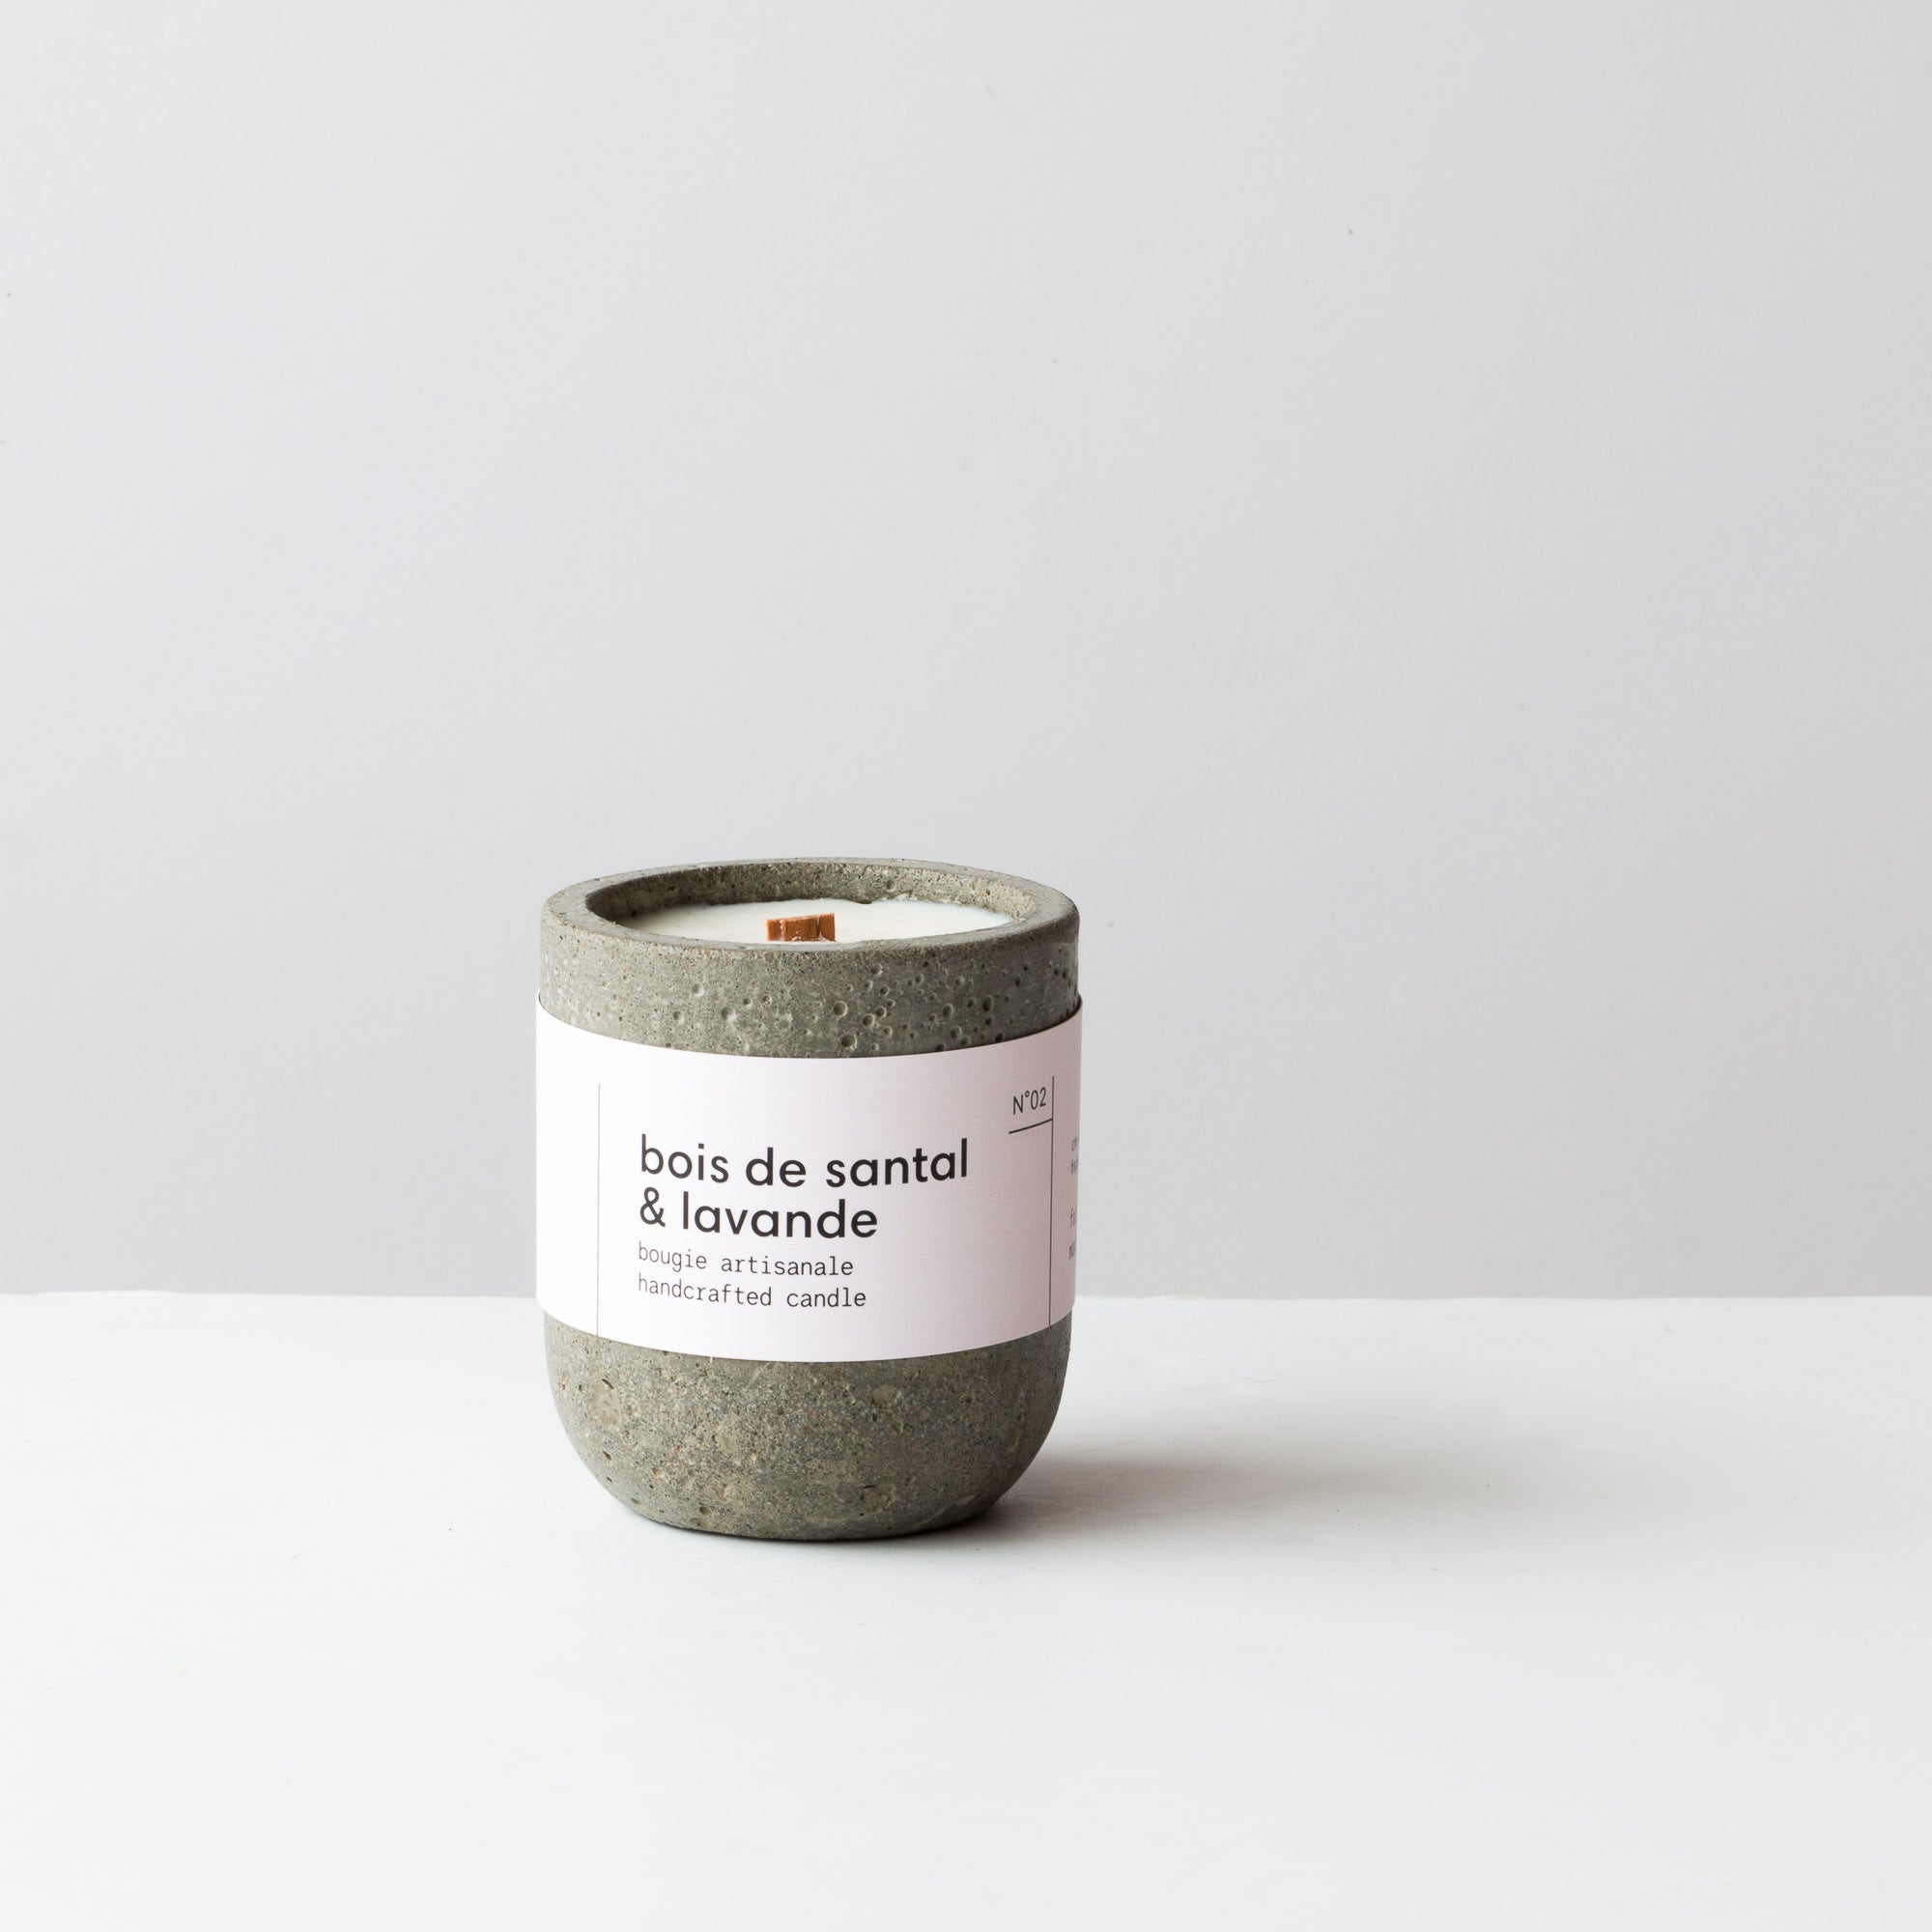 Handmade Sandalwood & Lavender Candle - With Crackling Wood Wick